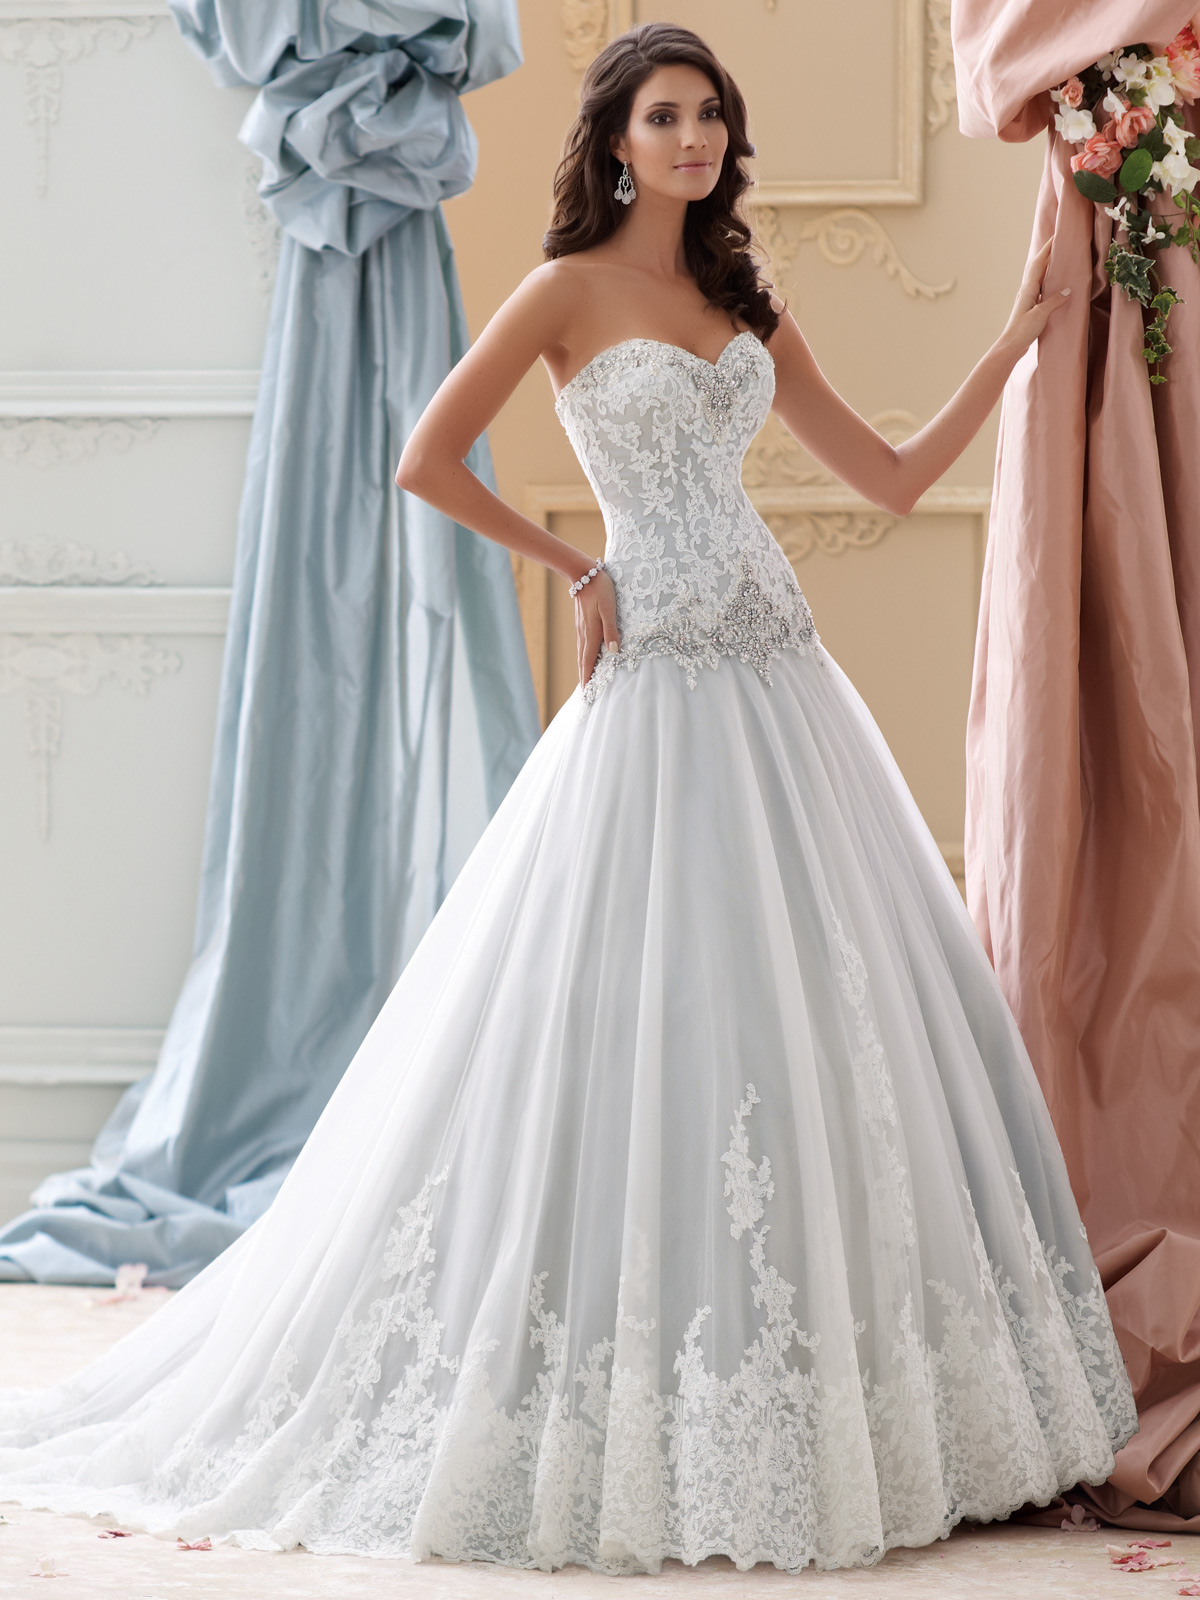 ANN MATTHEWS BRIDAL BALL GOWNS